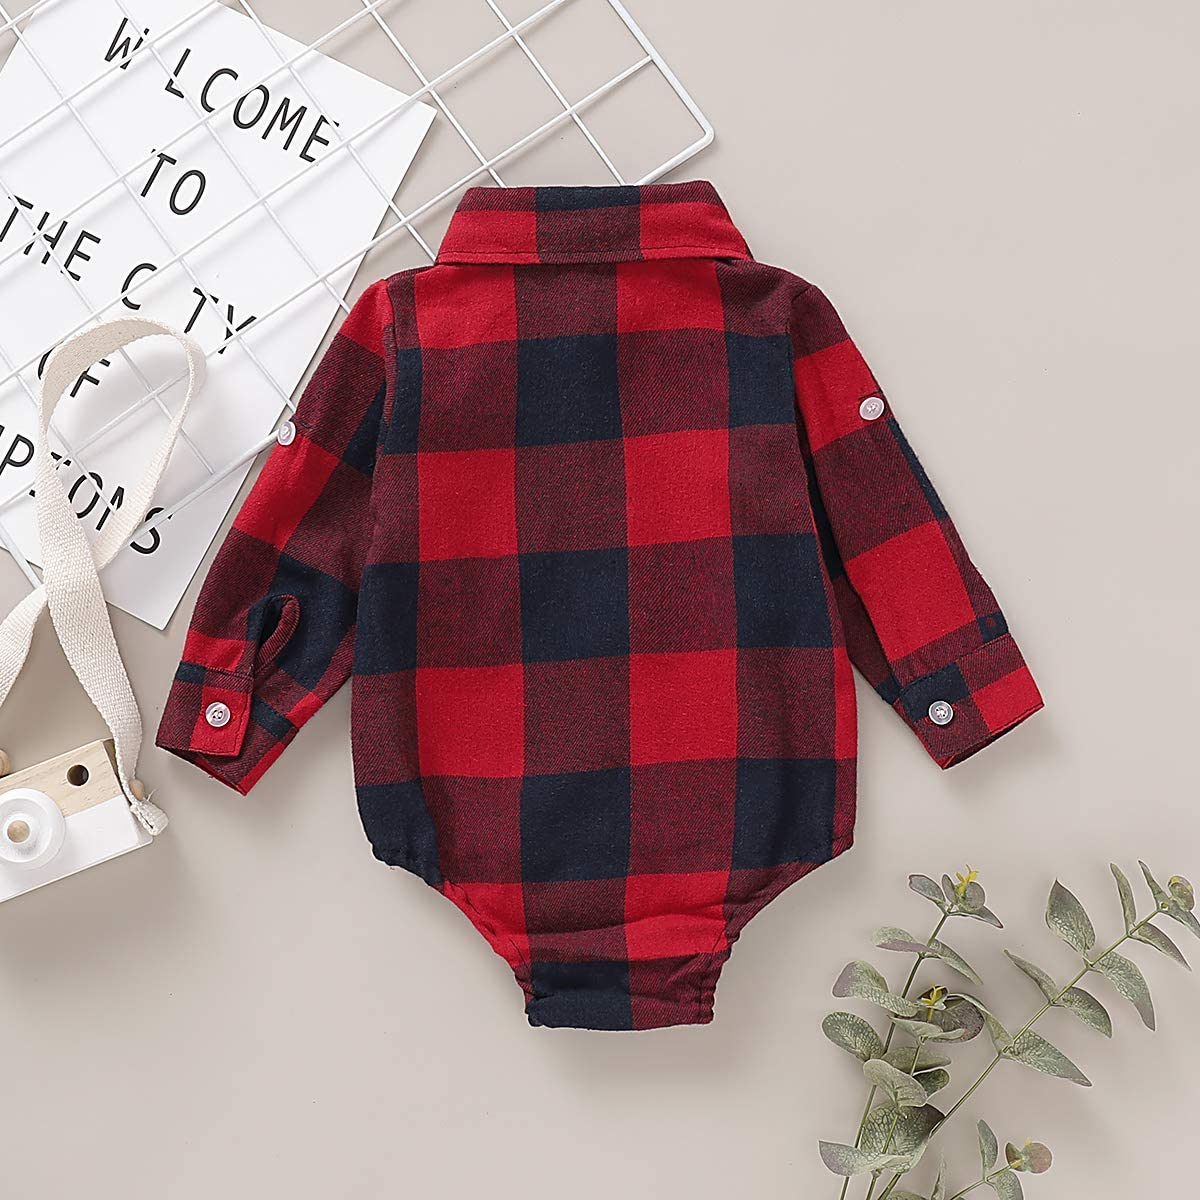 DaMohony Newborn Baby Plaid Romper Baby Boys Girls Plaid Shirt Infant Baby Long Sleeve Lapel Collar Jumpsuit